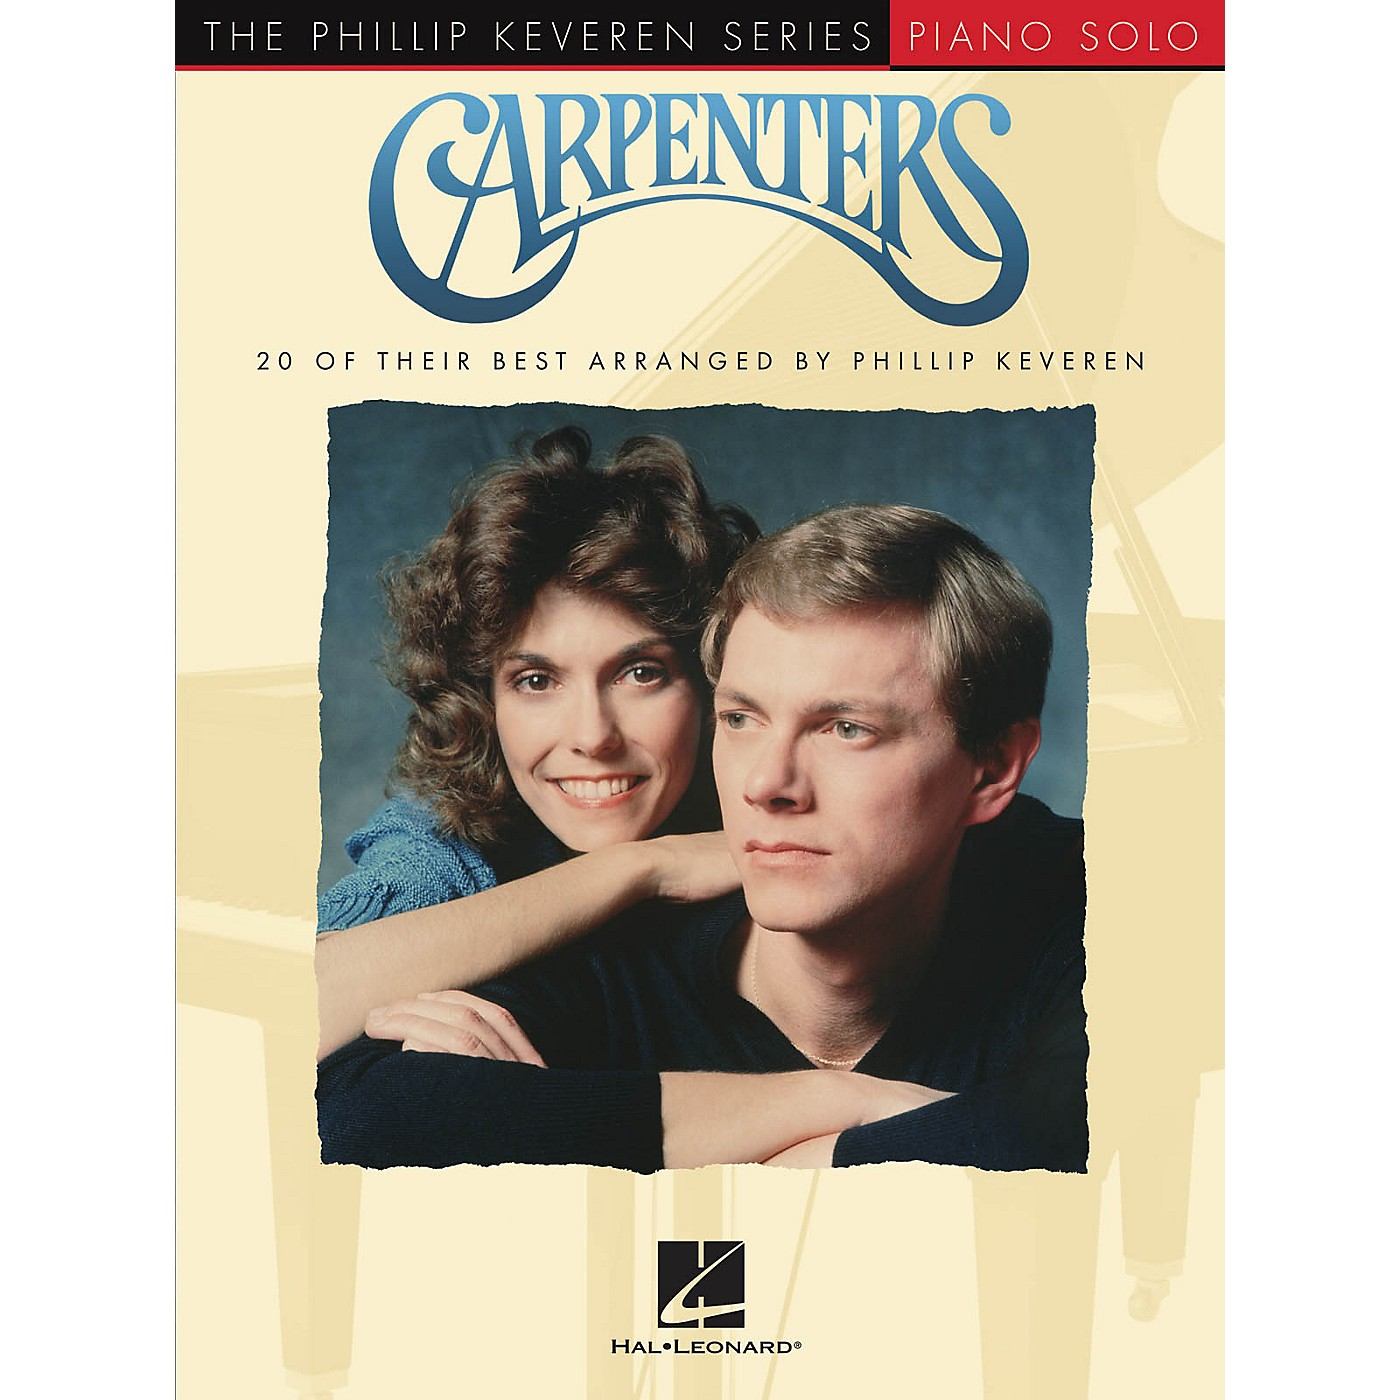 Hal Leonard Carpenters - 20 of Their Best Arranged by Phillip Keveren for Piano Solo thumbnail